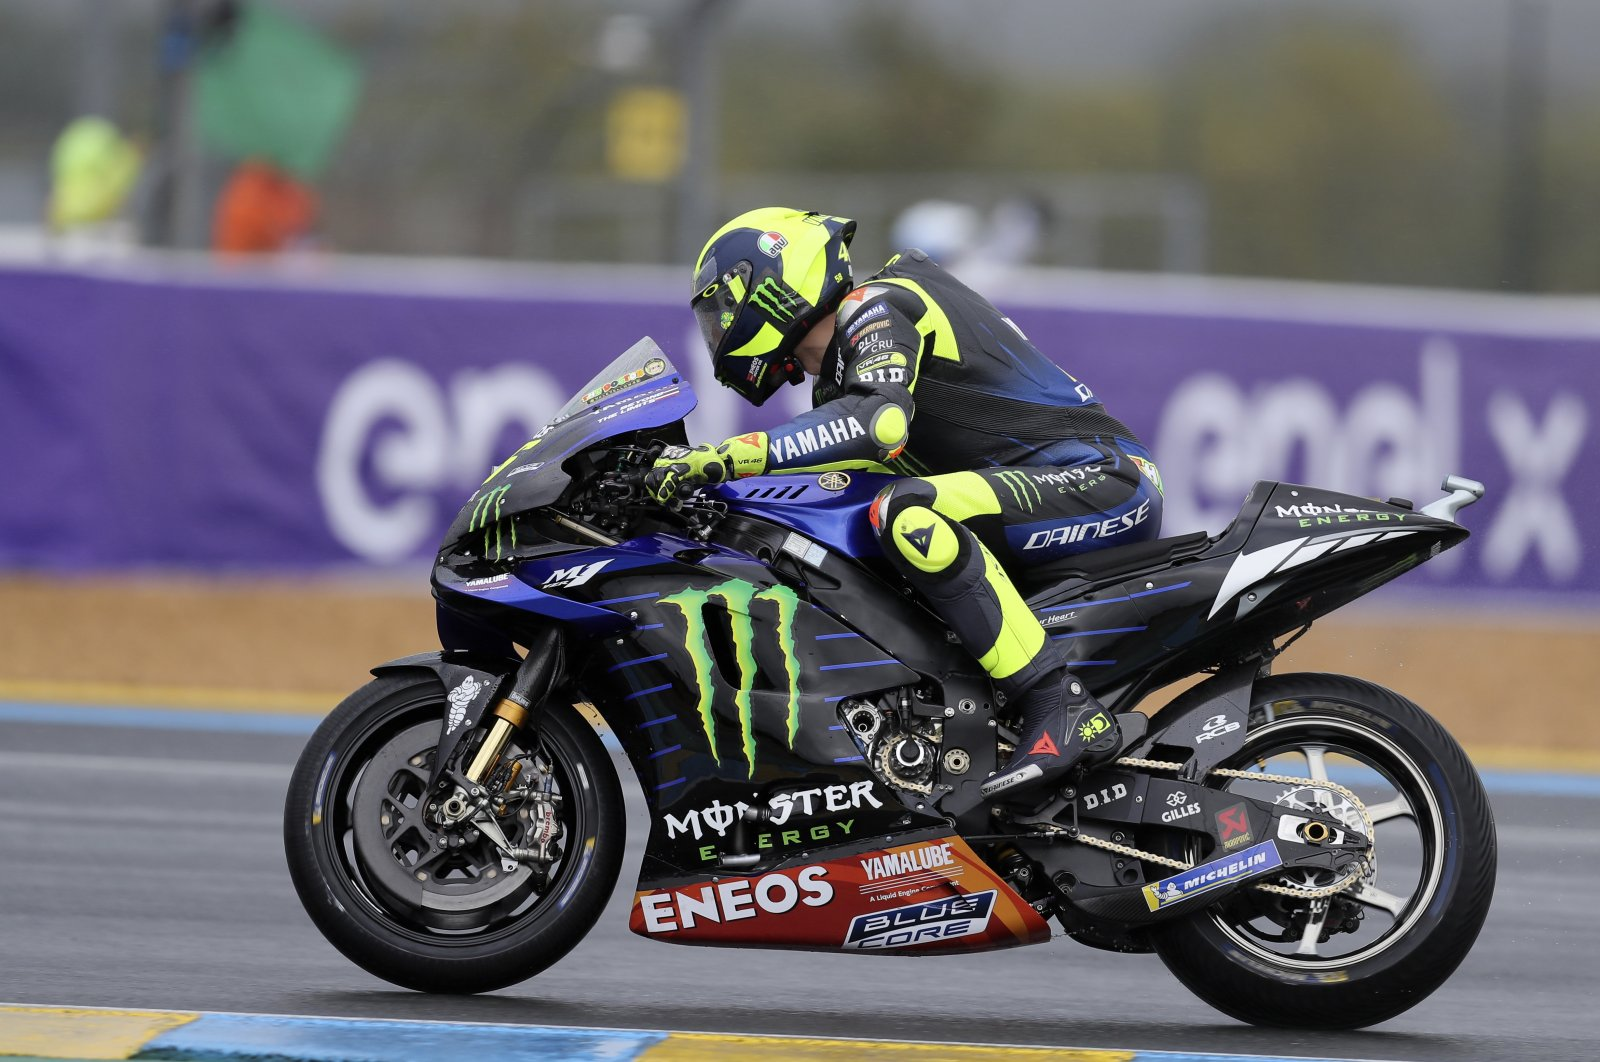 Valentino Rossi in action during the French GP, his last race before testing positive for COVID-19, in Le Mans, France, Oct. 11, 2020.